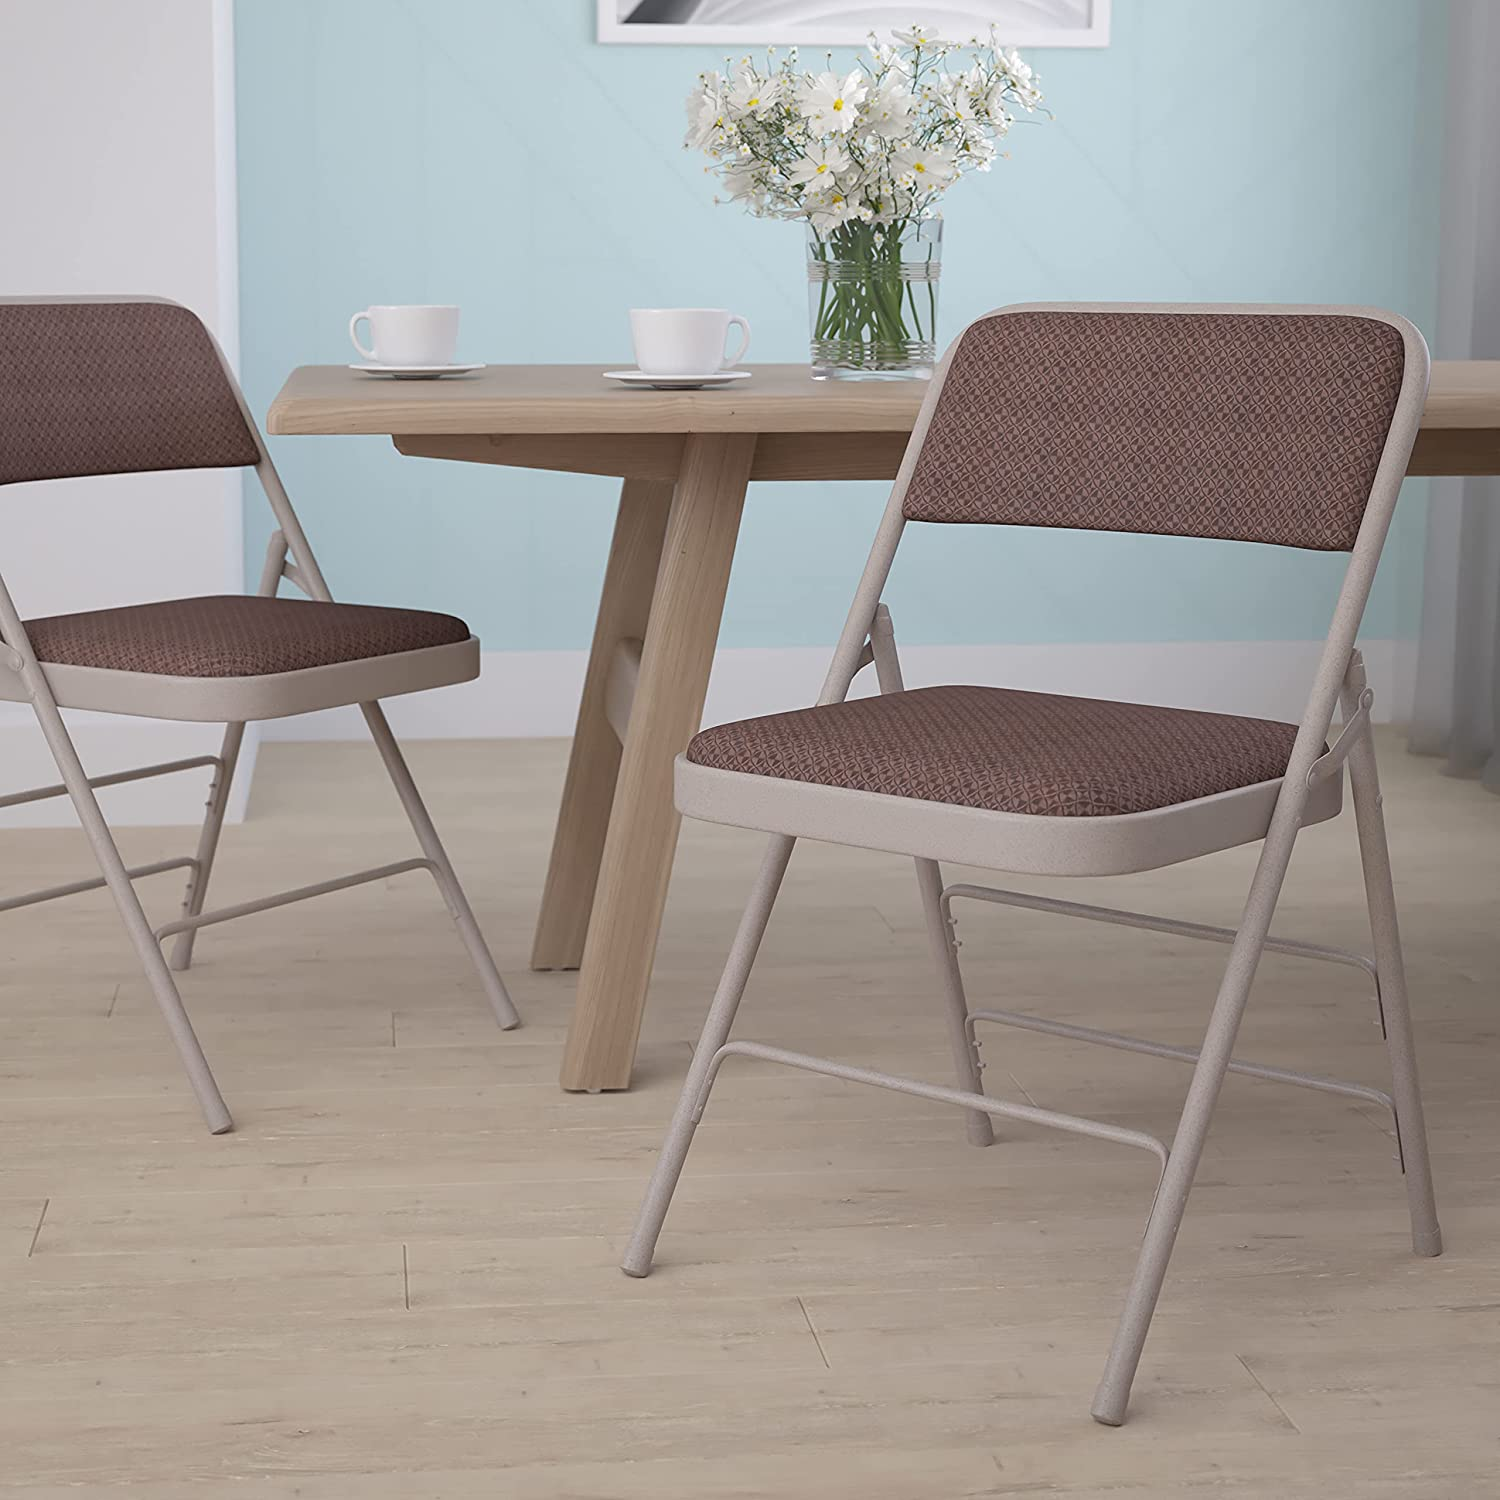 Flash Furniture HERCULES Series Curved Triple Braced & Double Hinged Brown Patterned Fabric Metal Folding Chair